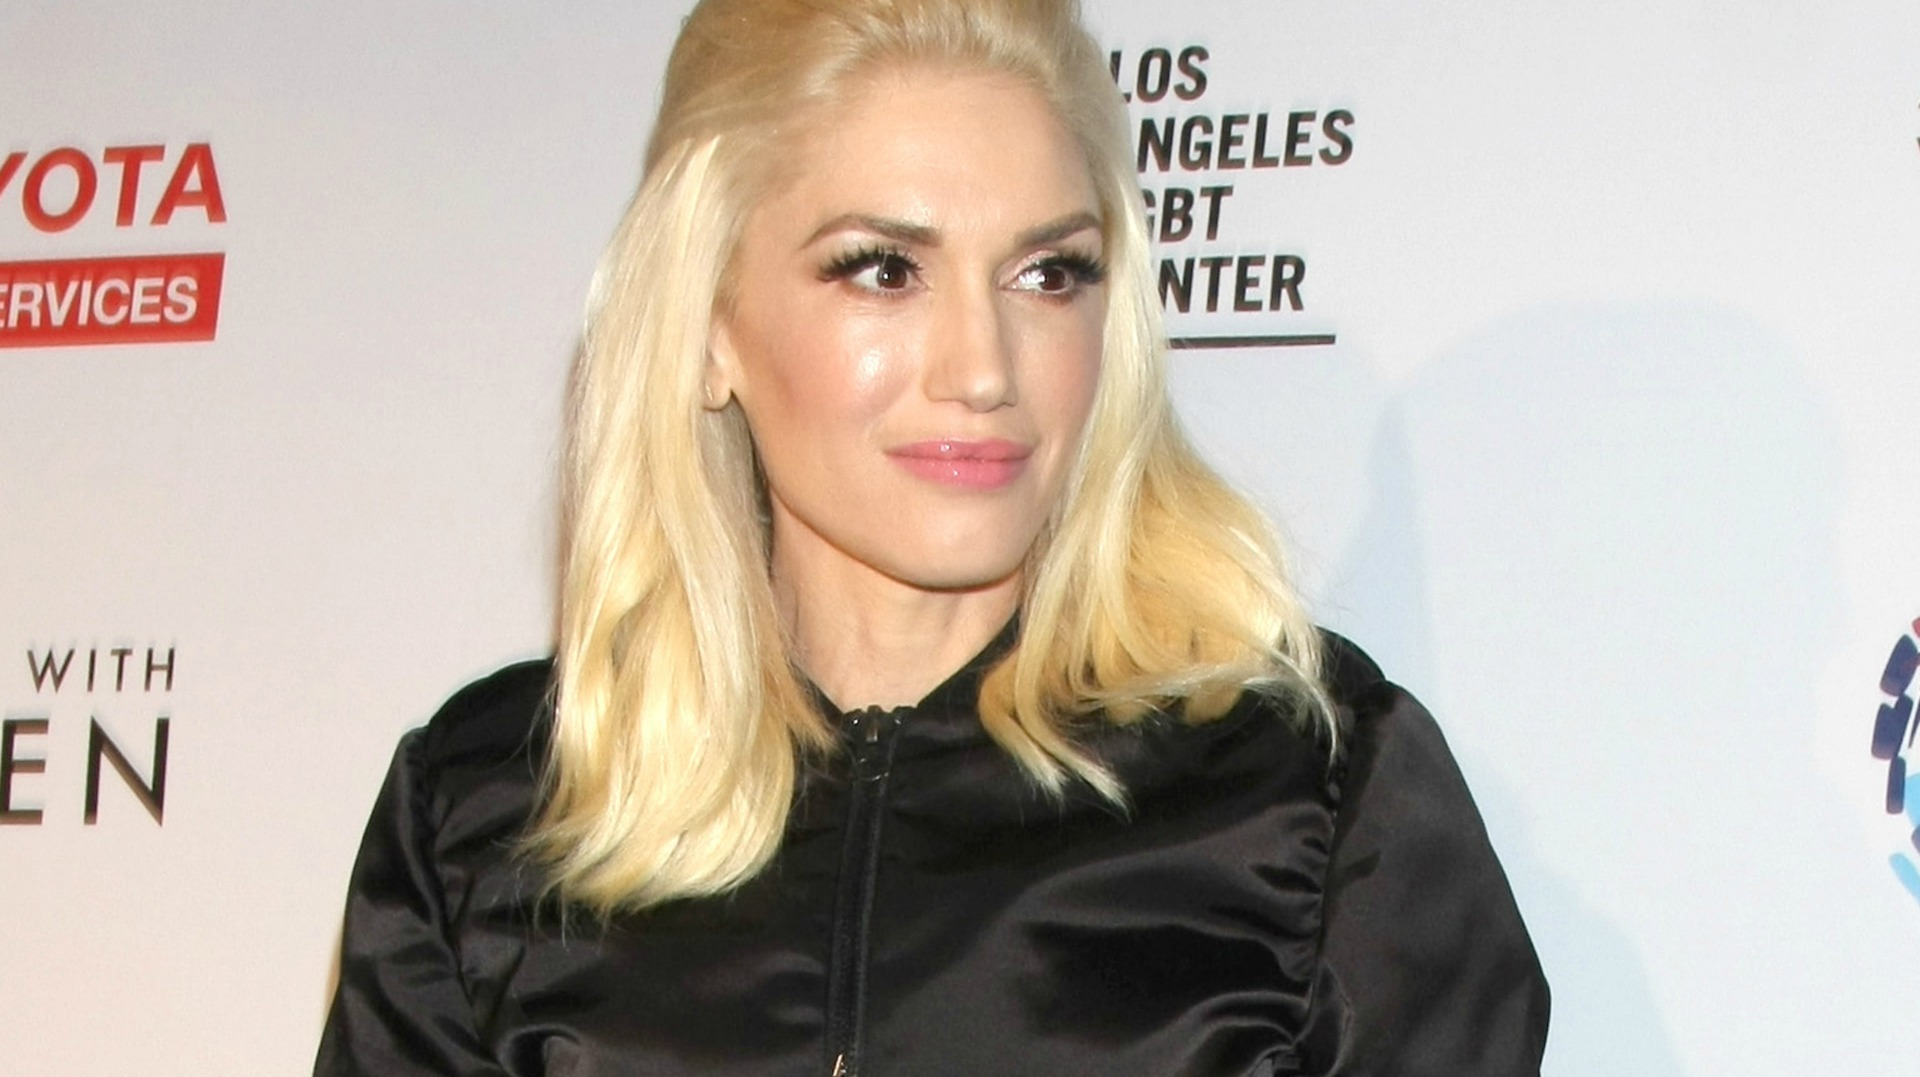 Gwen Stefani Wallpapers Images Photos Pictures Backgrounds